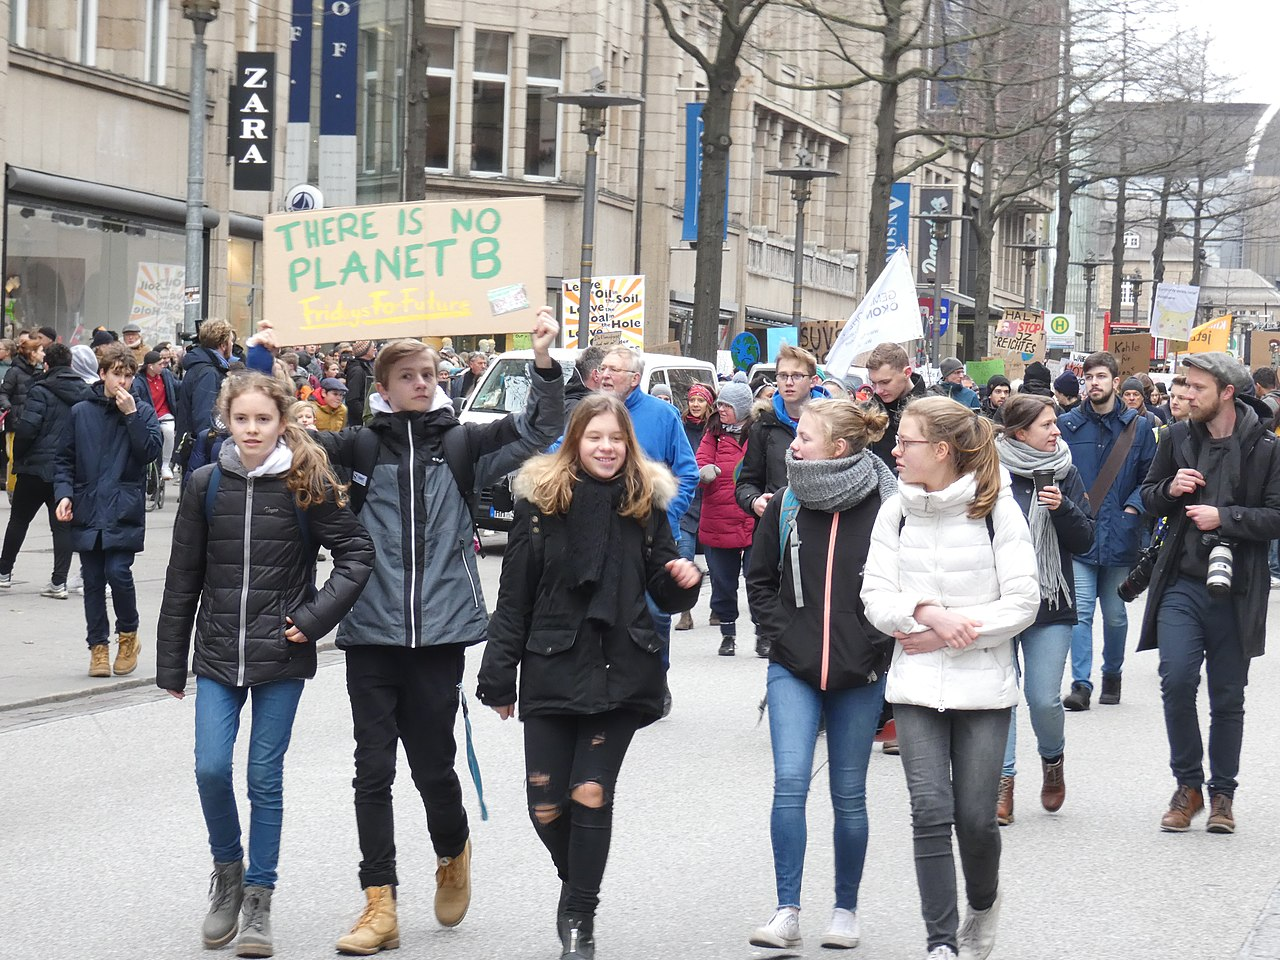 FridaysForFuture Hamburg 2019-03-01 42.jpg